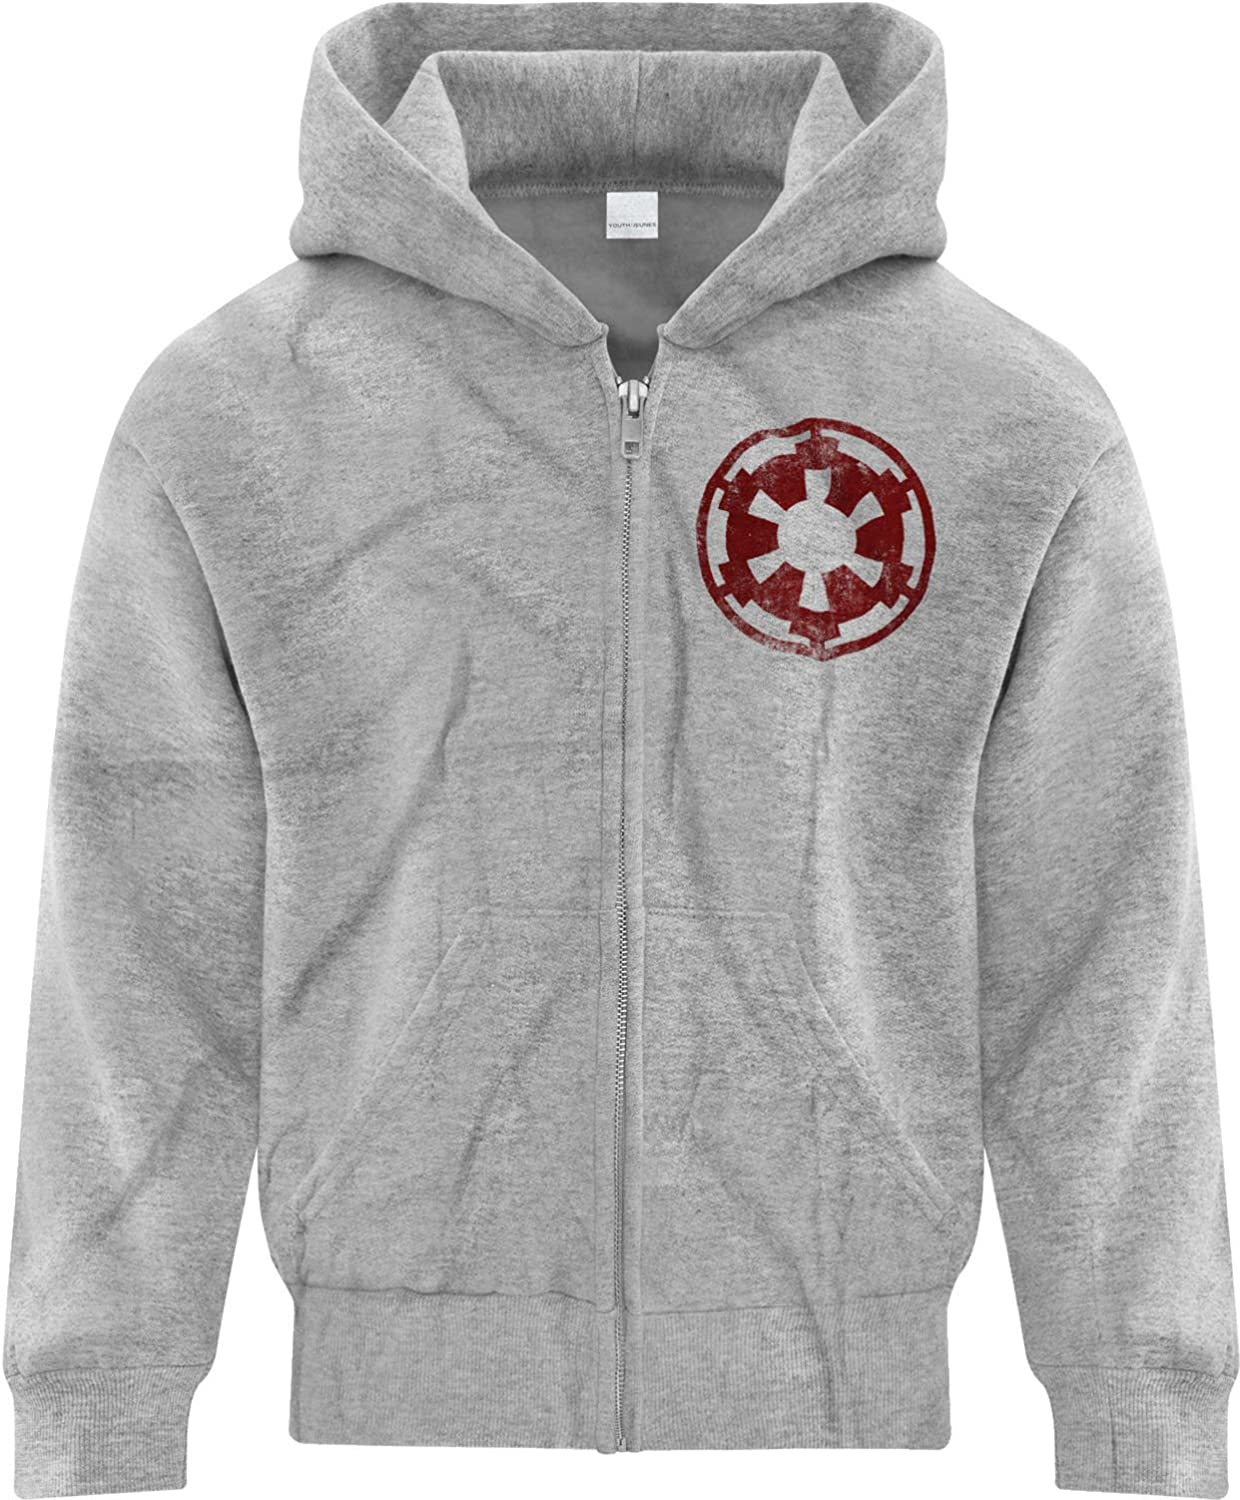 BSW Youth Girls Star Wars Imperial Crest Empire Logo Sith Lord Zip Hoodie